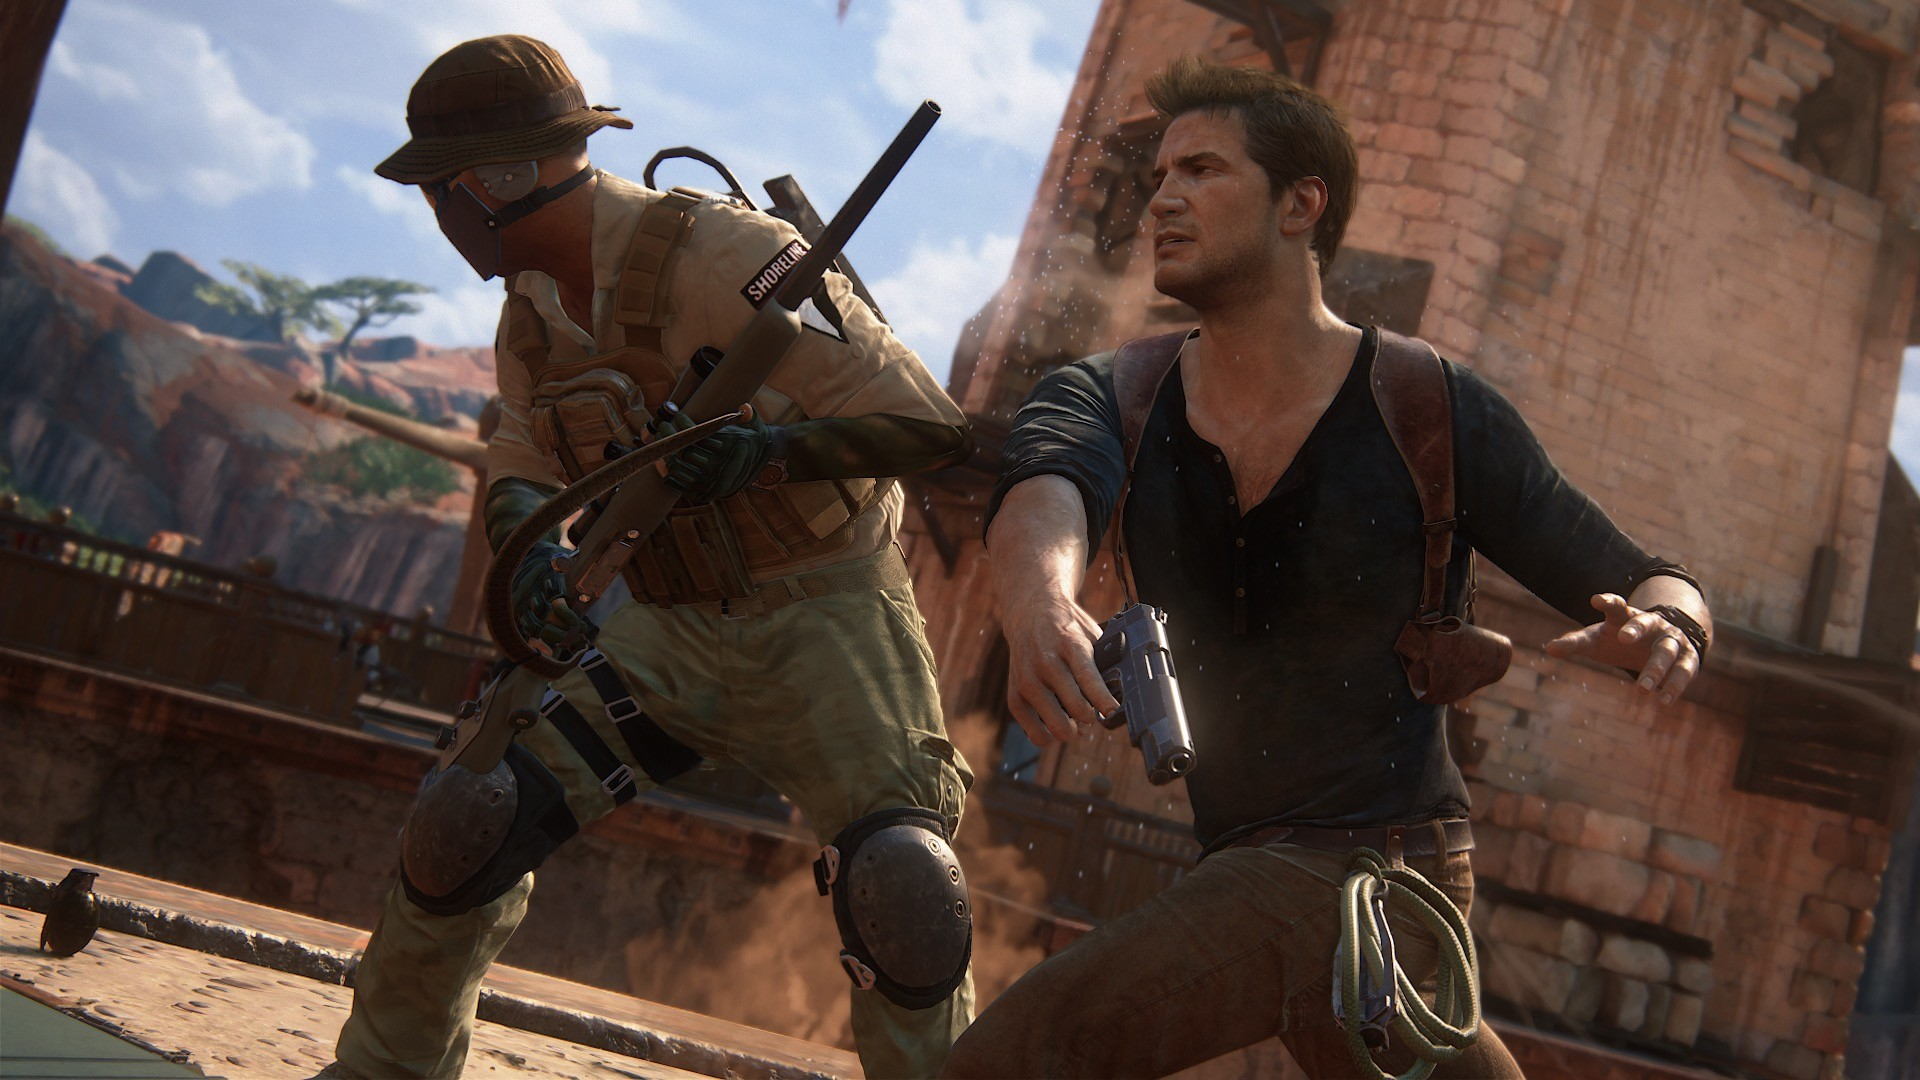 Uncharted 4 20 - [Đánh giá game] Uncharted 4: A Thief End